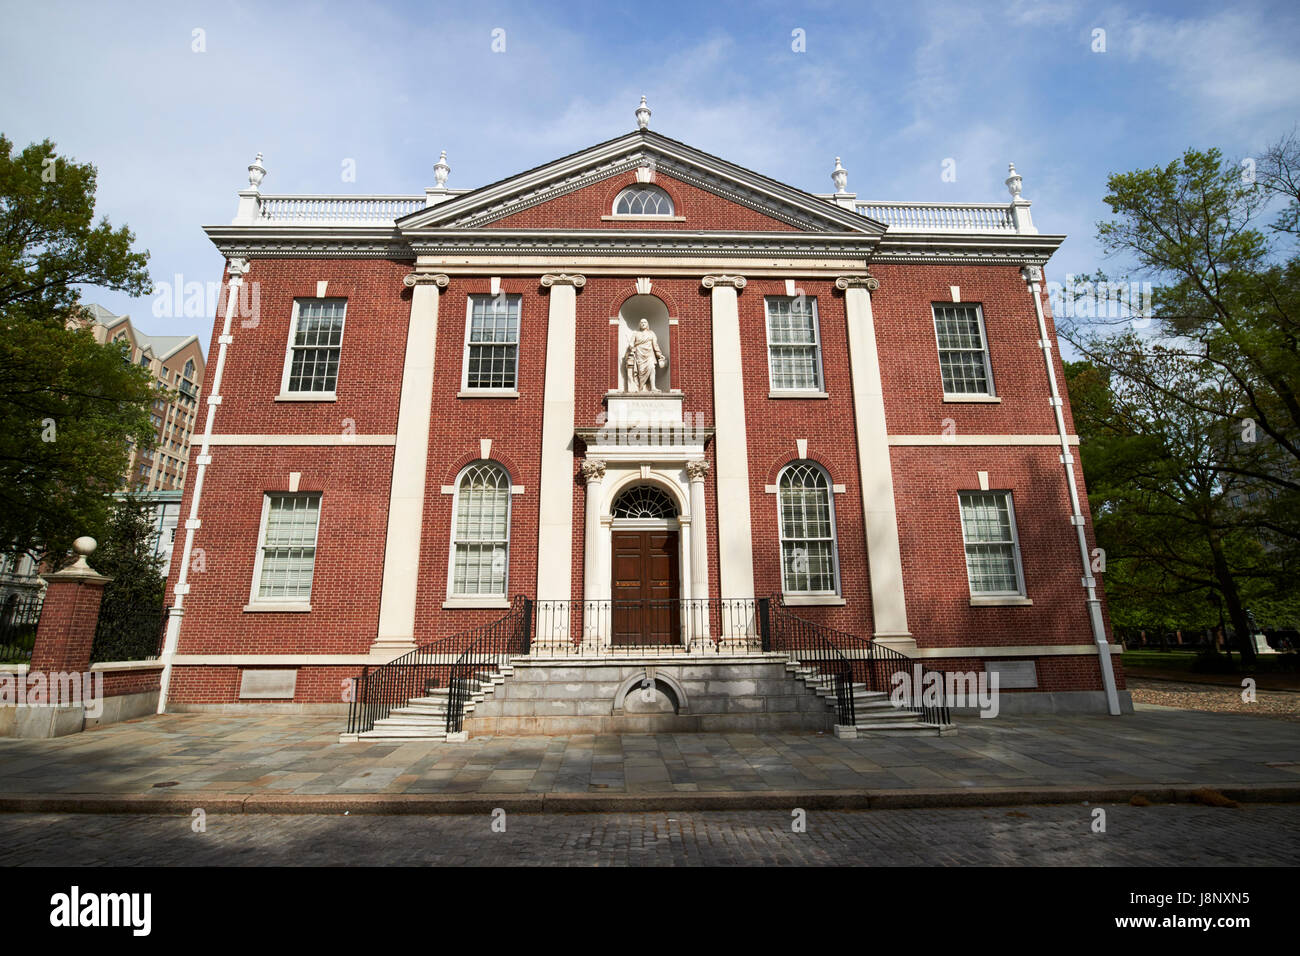 library hall old city Philadelphia USA - Stock Image